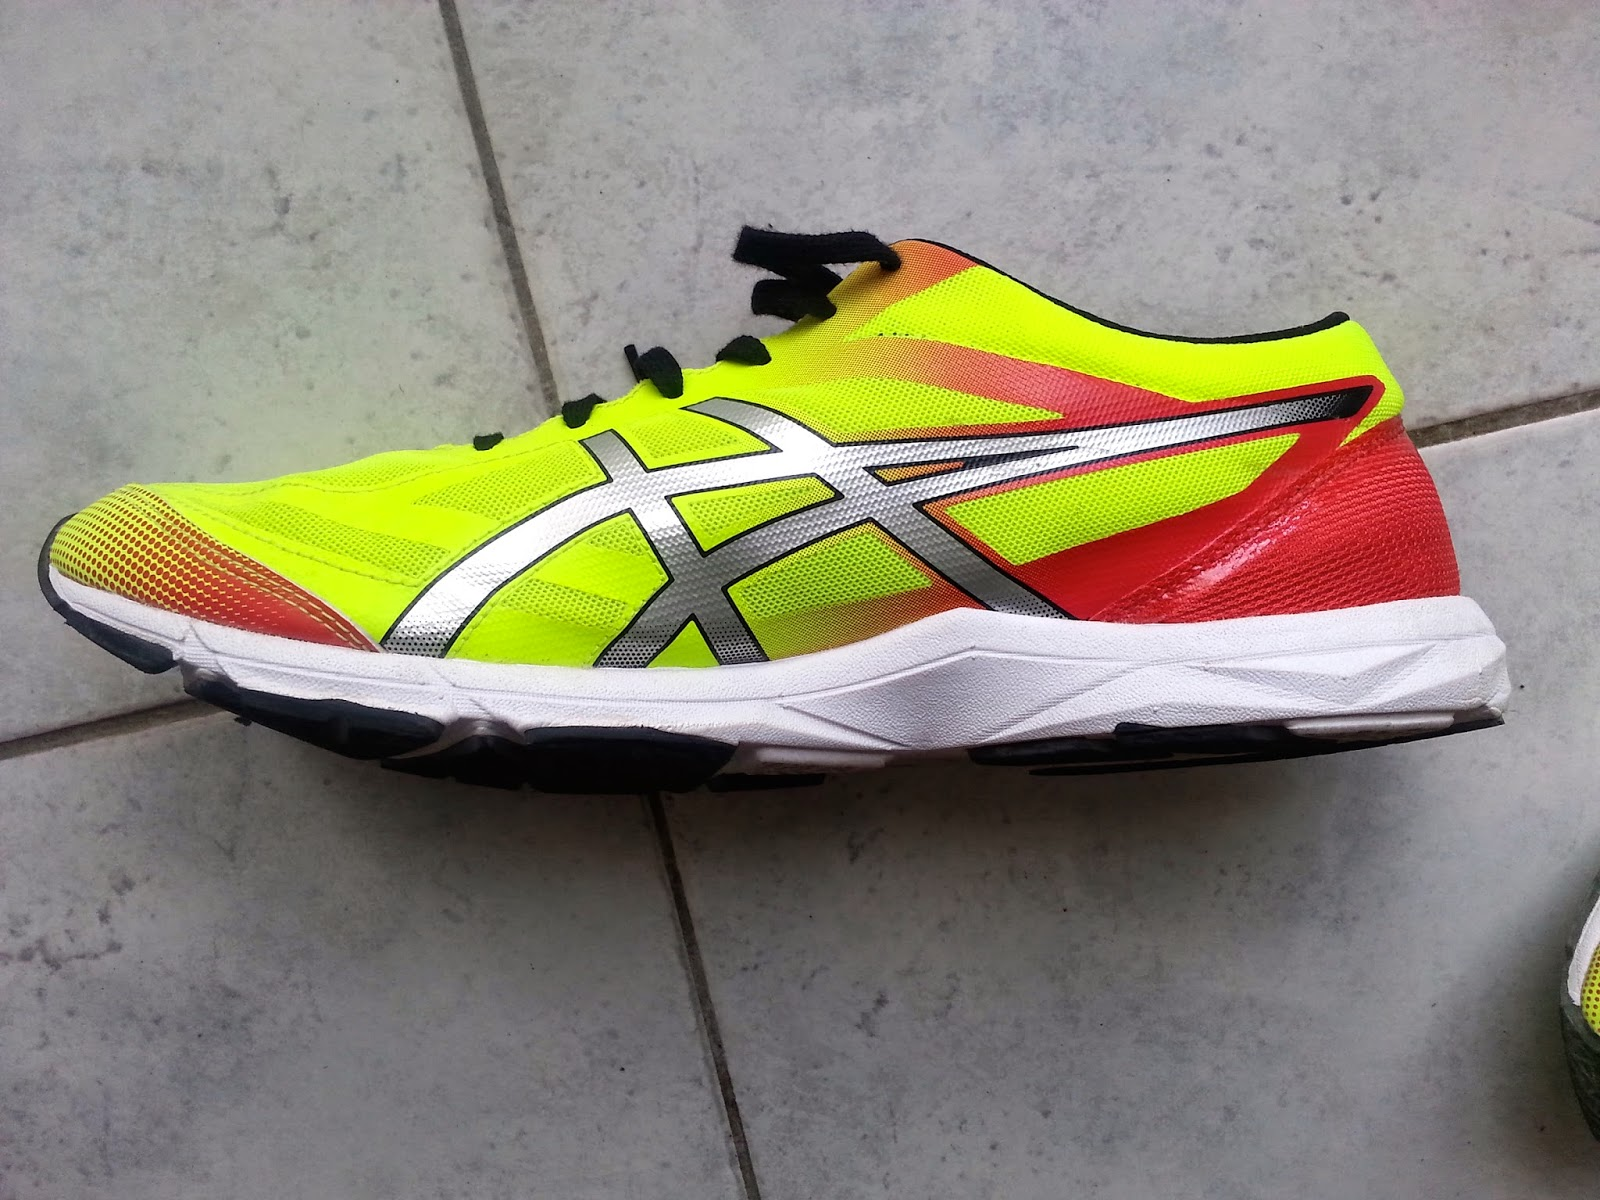 asics gel-hyperspeed 6 running shoes review